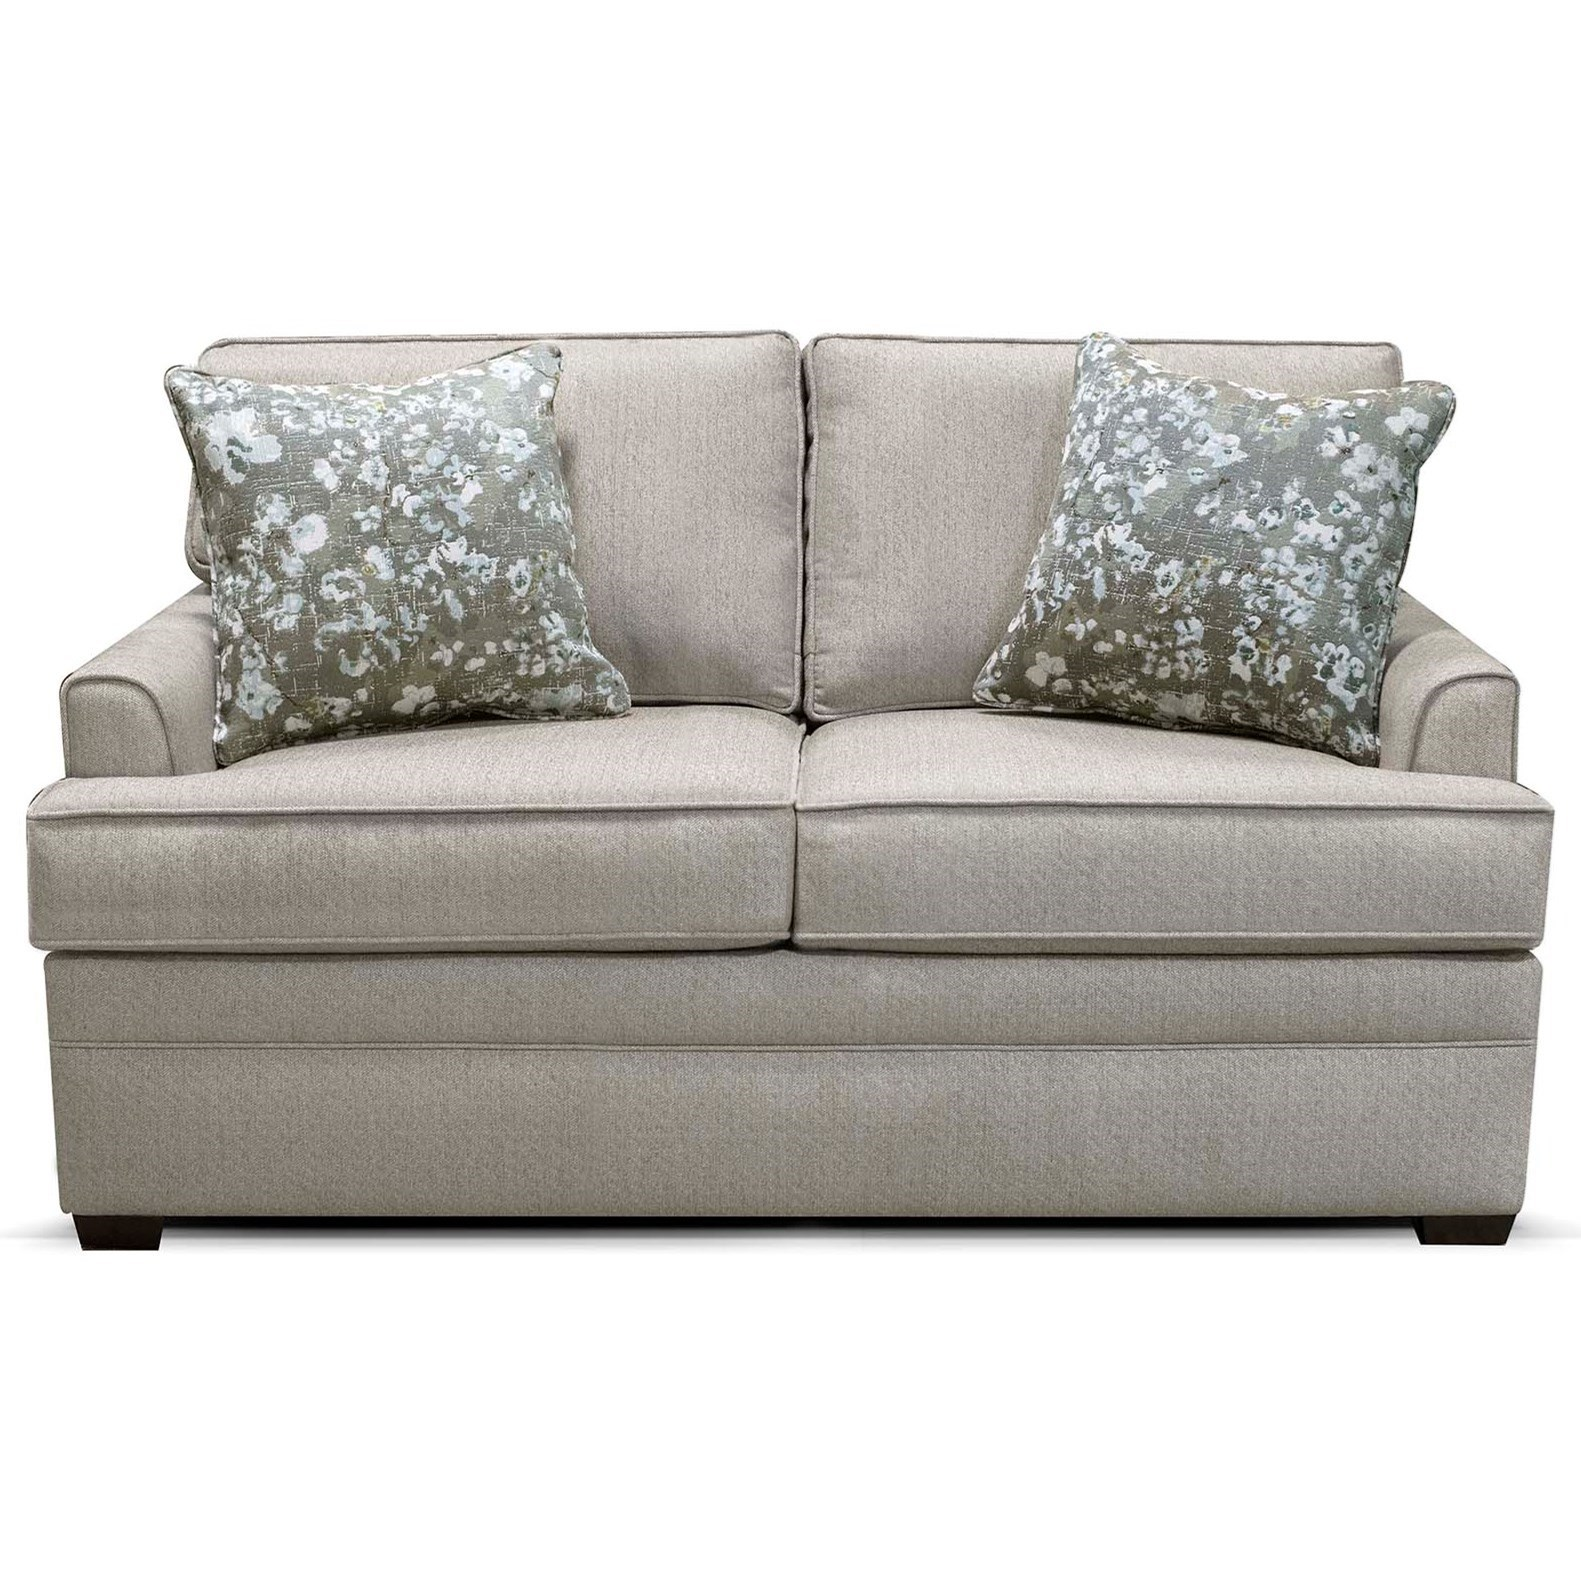 Hallie Loveseat by England at Suburban Furniture